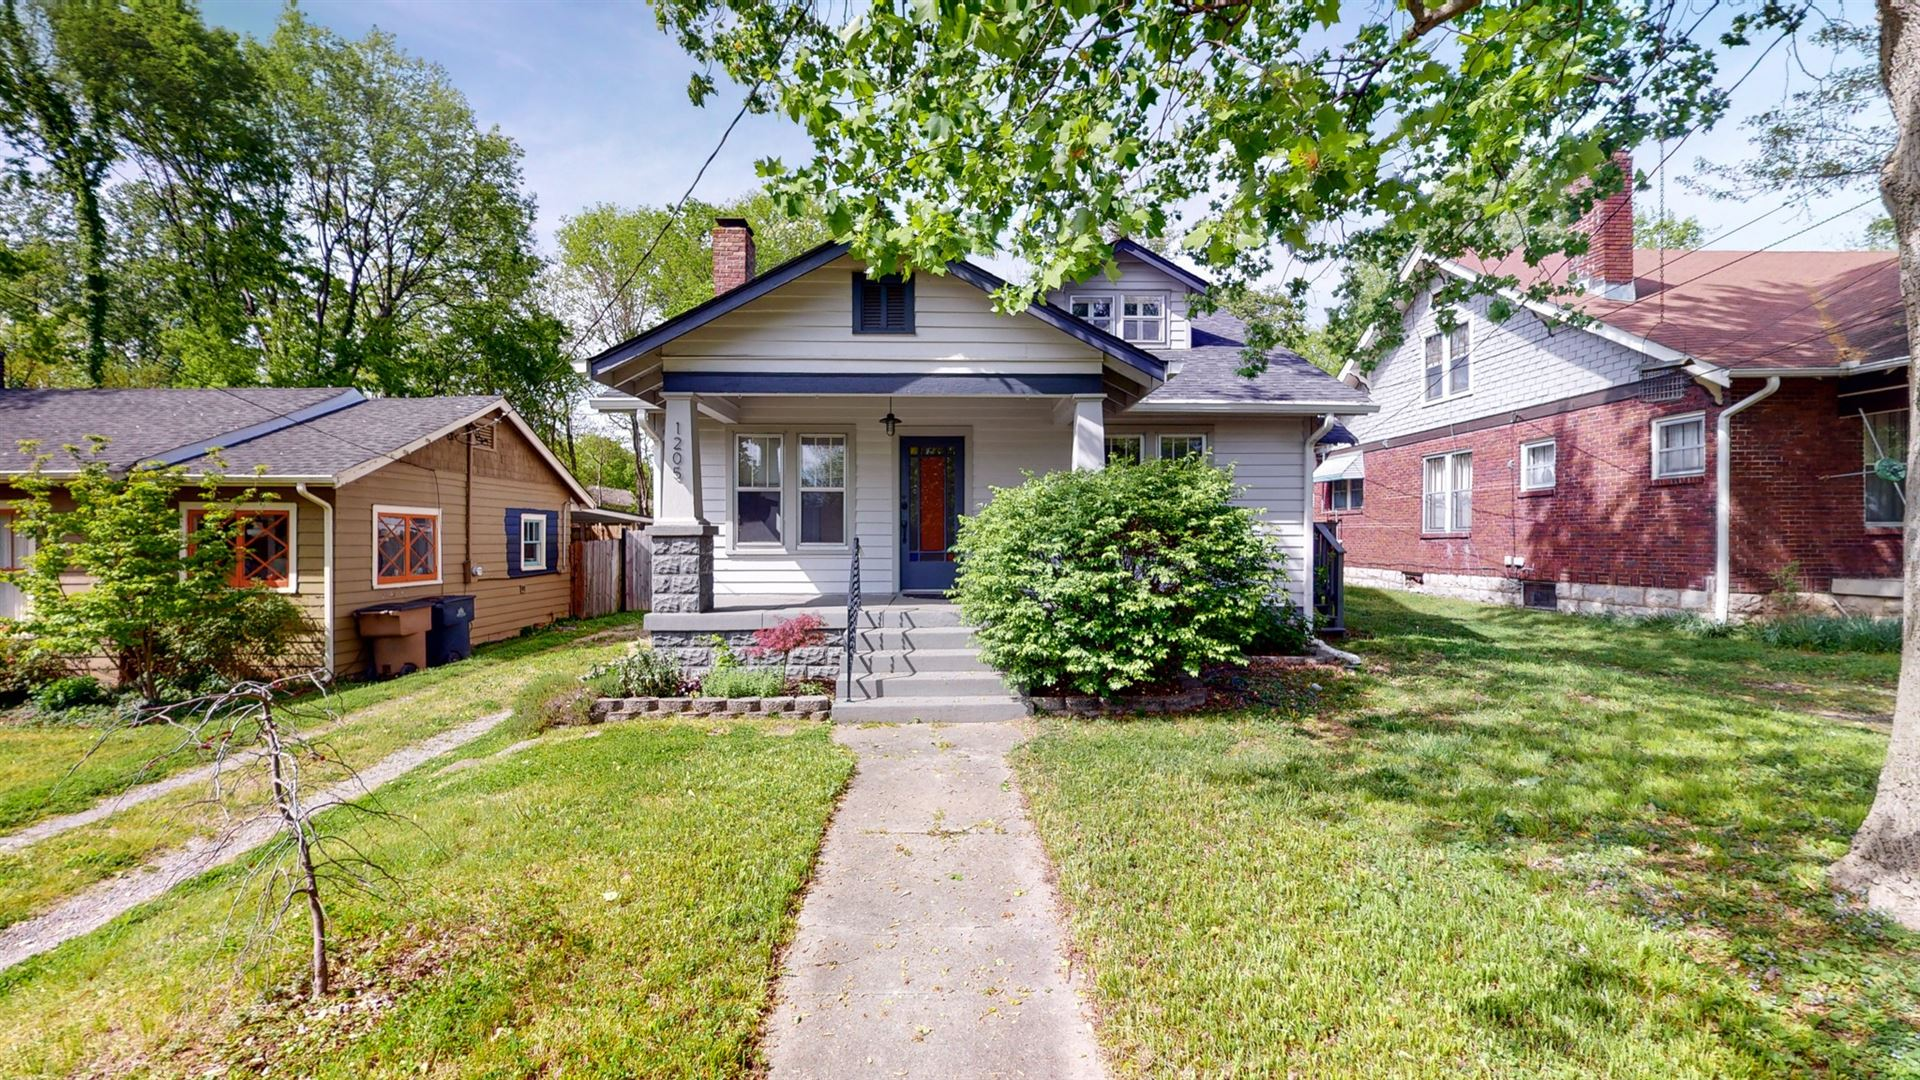 1205 Shelton Ave, Nashville, TN 37216 - MLS#: 2248937